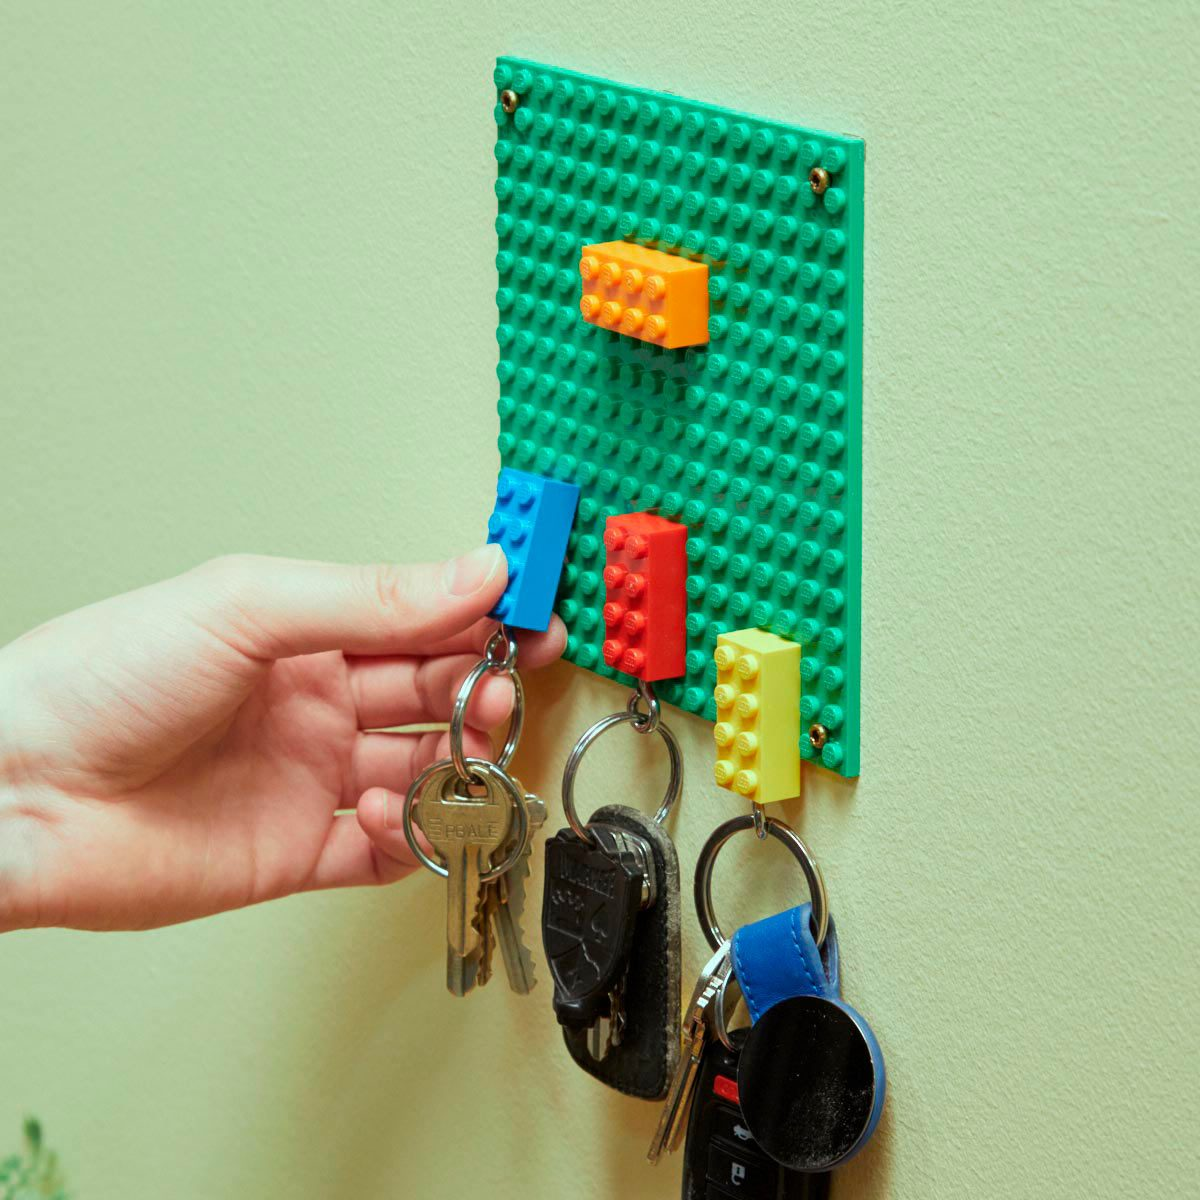 10 Hacks to Try If You're Always Losing Things Around the House